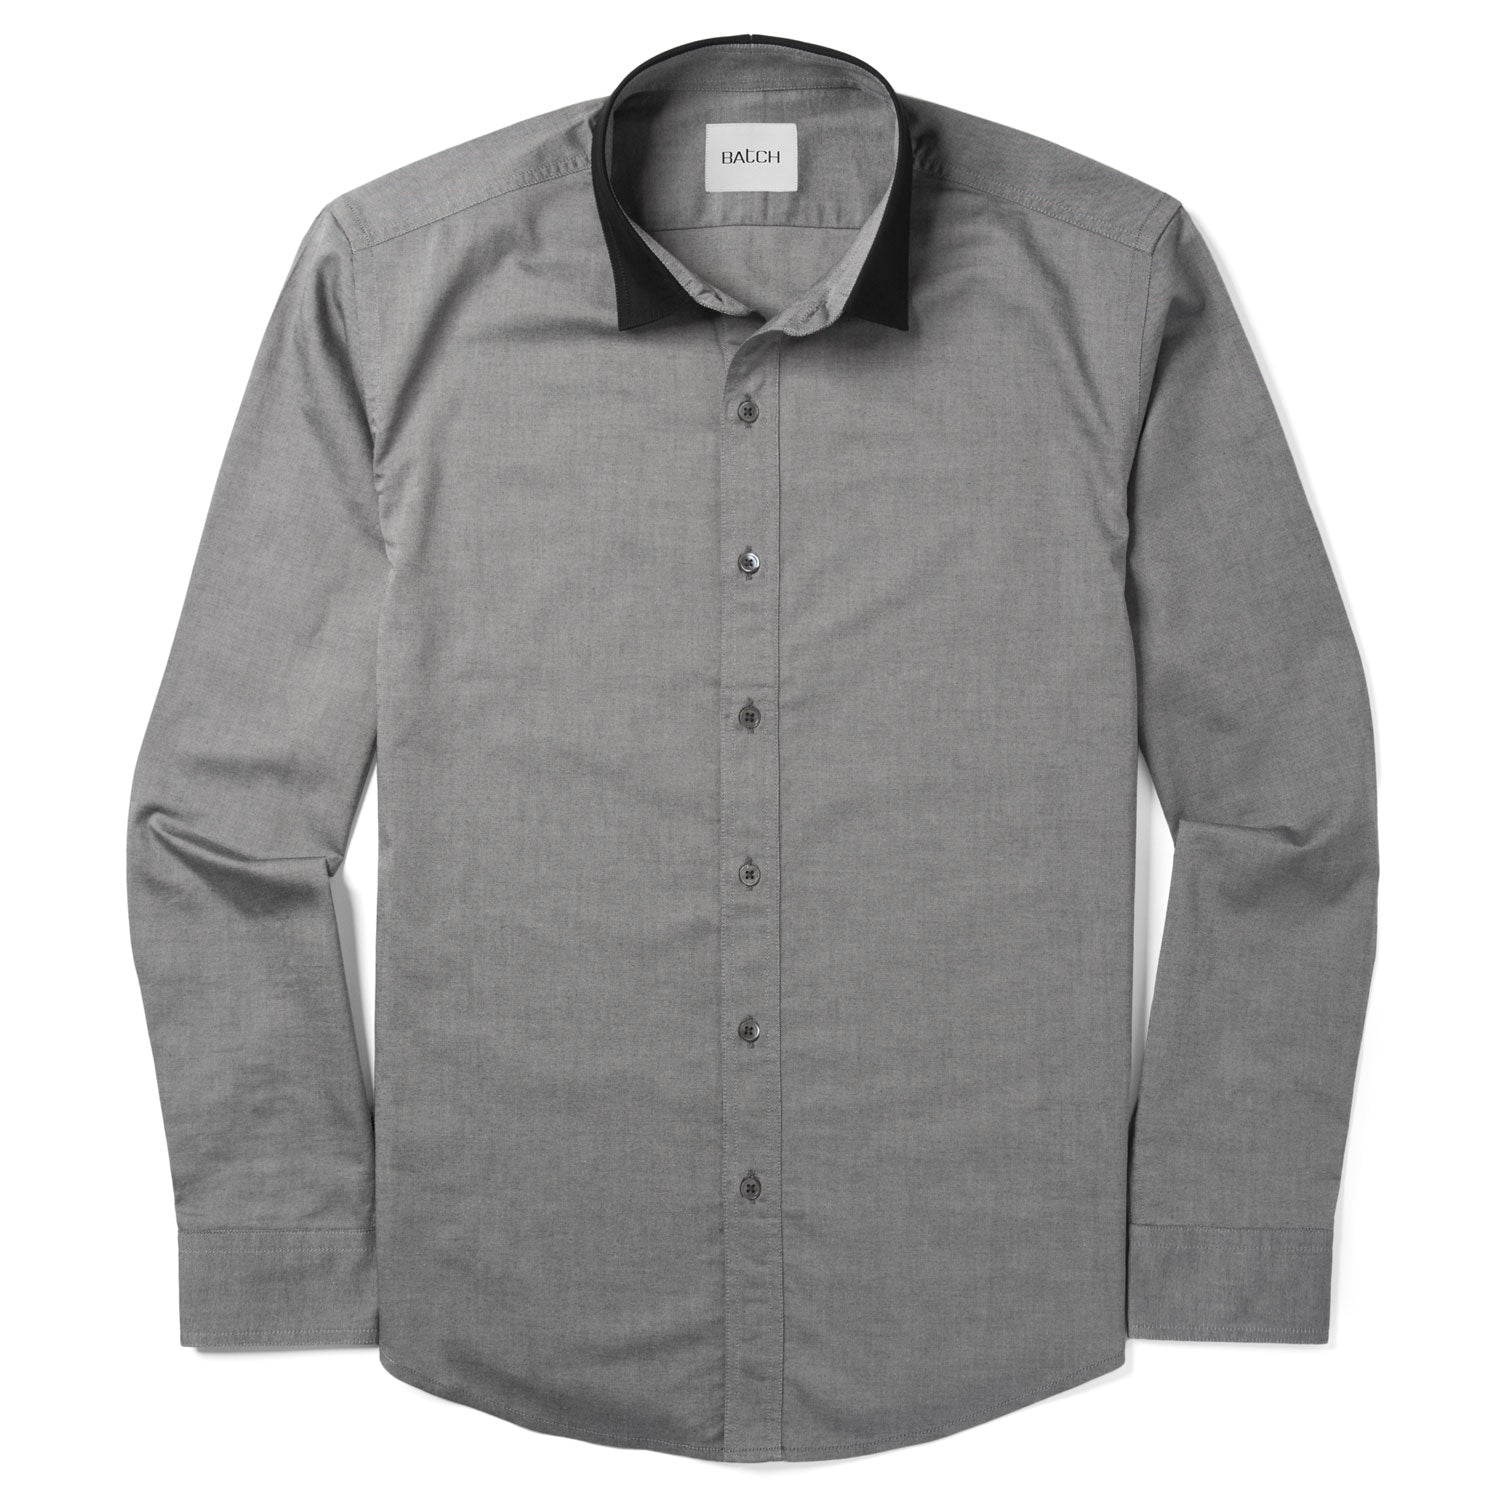 Contrast Collar Shirt - Smoke Gray Cotton Oxford